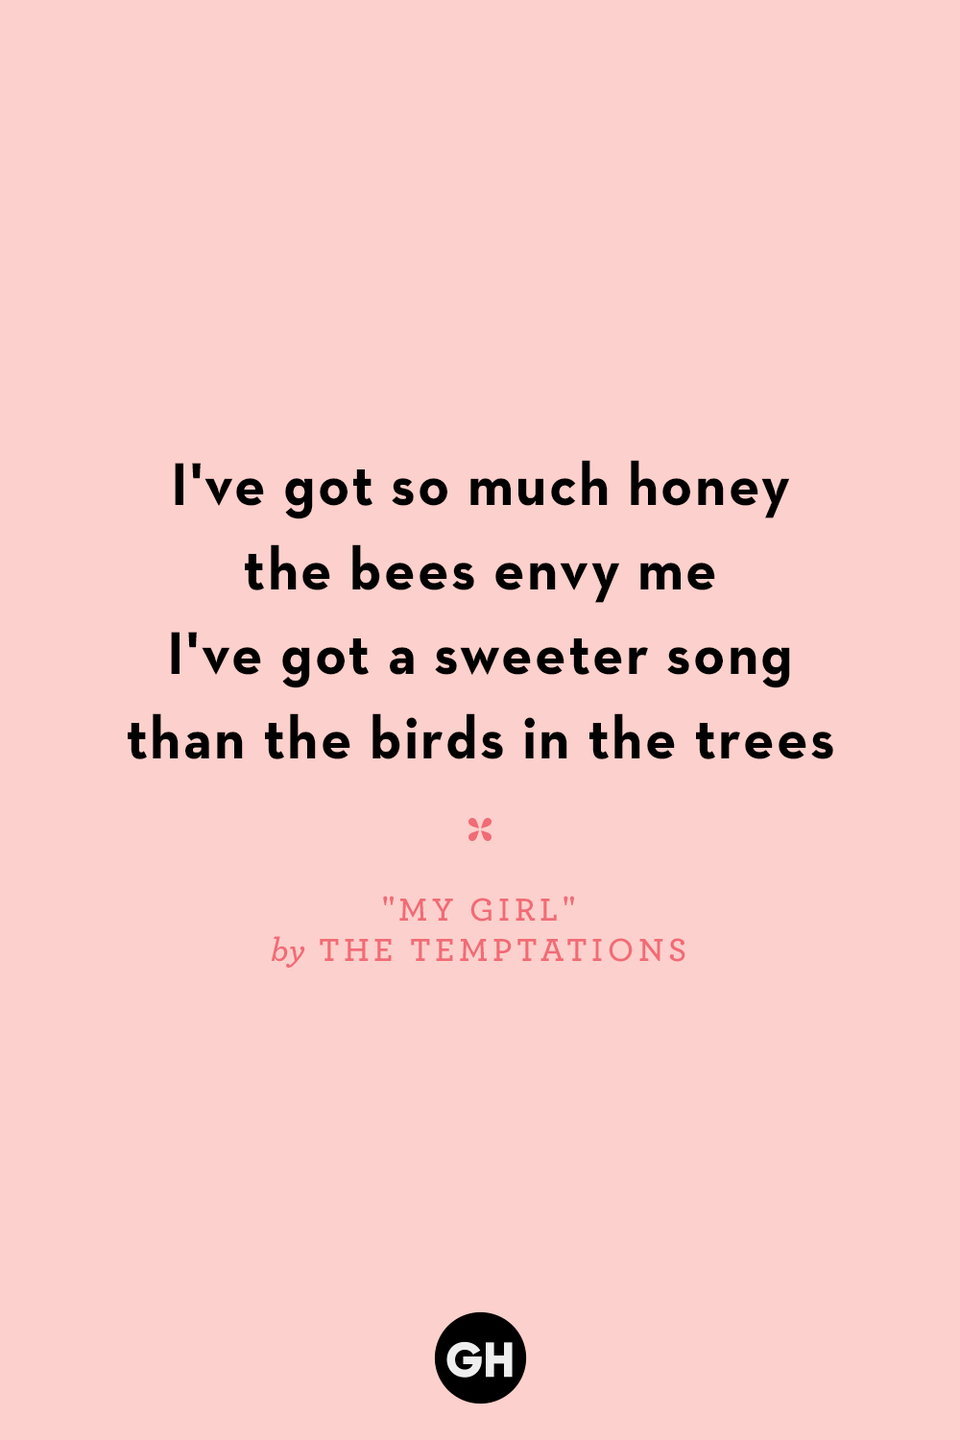 <p>I've got so much honey the bees envy me</p><p>I've got a sweeter song than the birds in the trees</p>